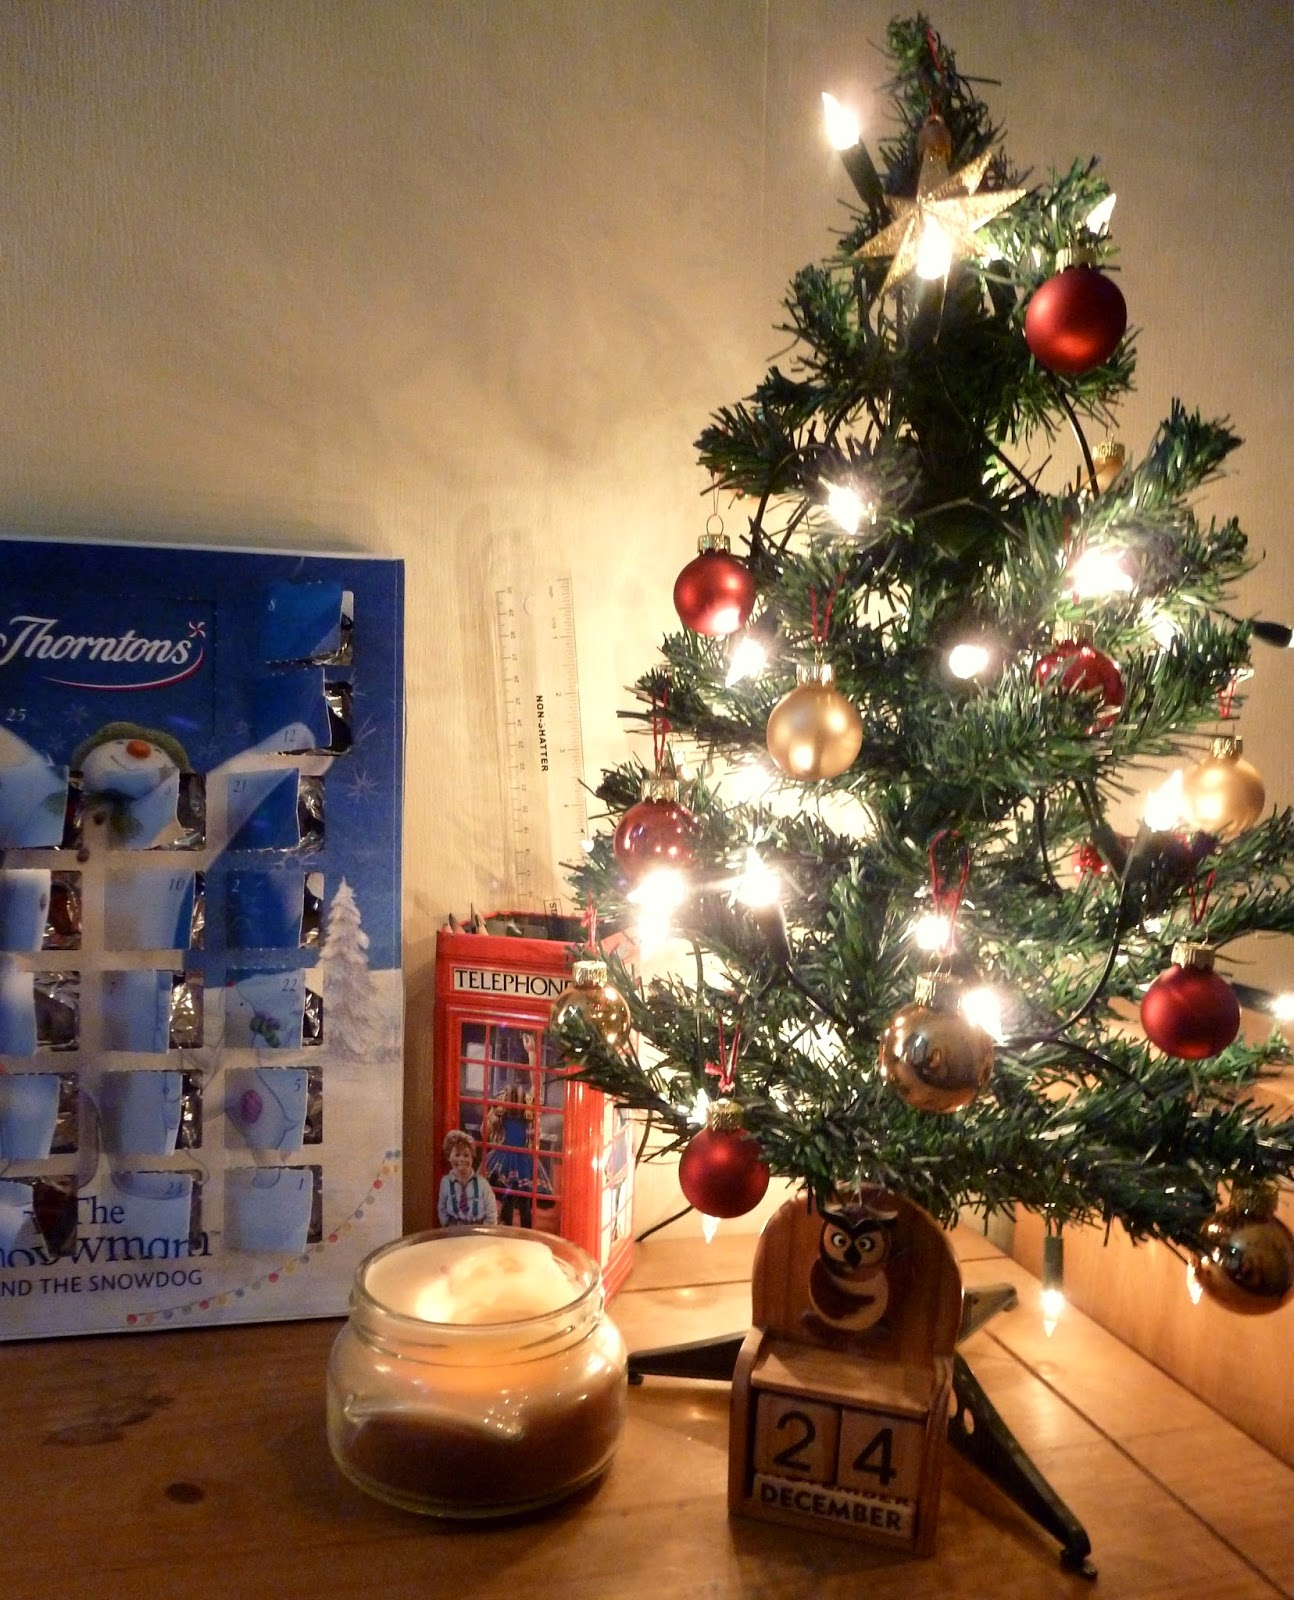 Thorntons chocolate advent calender and christmas tree with lights and baubles